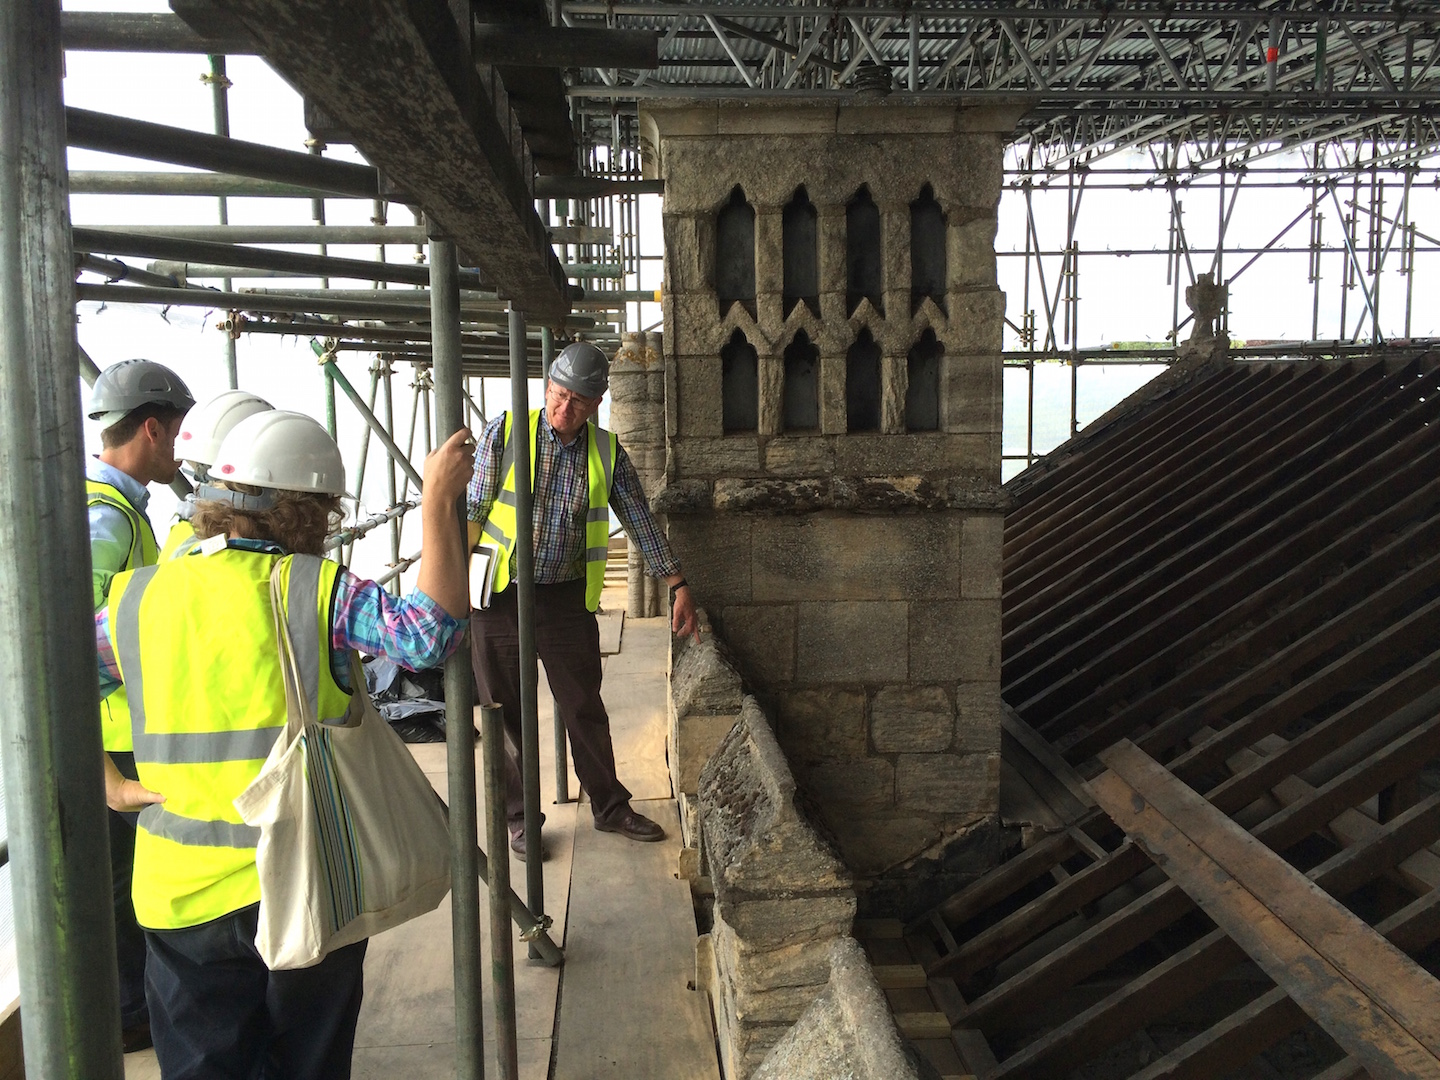 Tony Redman of WCP with Debbie Priddy (Historic England), Sam Falco (Peterborough City Council) and Dr Jackie Hall (Cathedral Archaeologist) on the roof of the Knights' Chamber. Credit: WCP